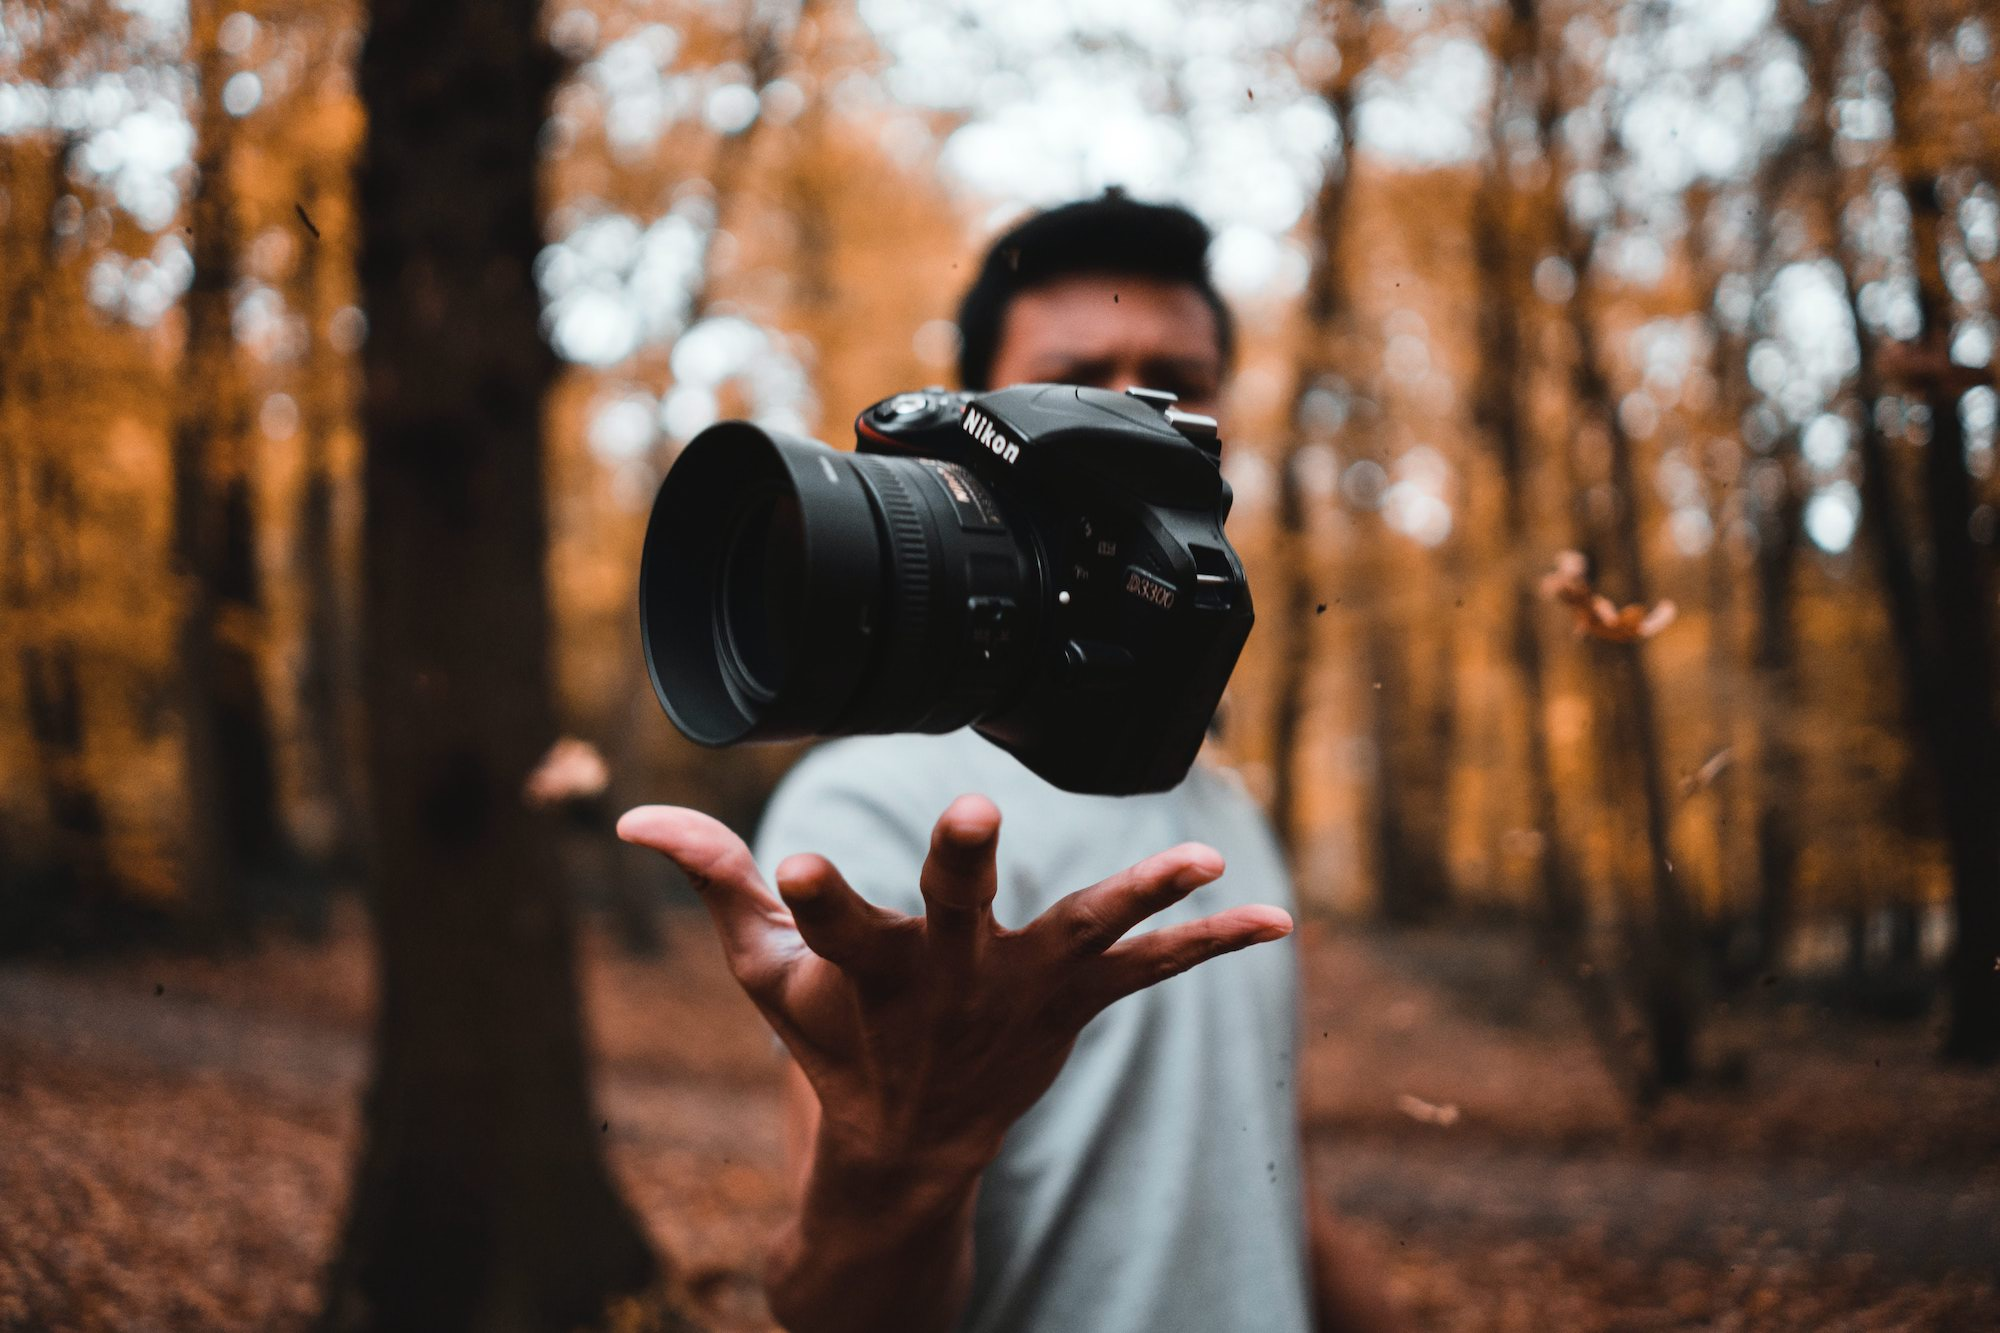 Most photographers think that the job is done once they deliver those images. It turns out, you're missing out on making a lot more money because of that!